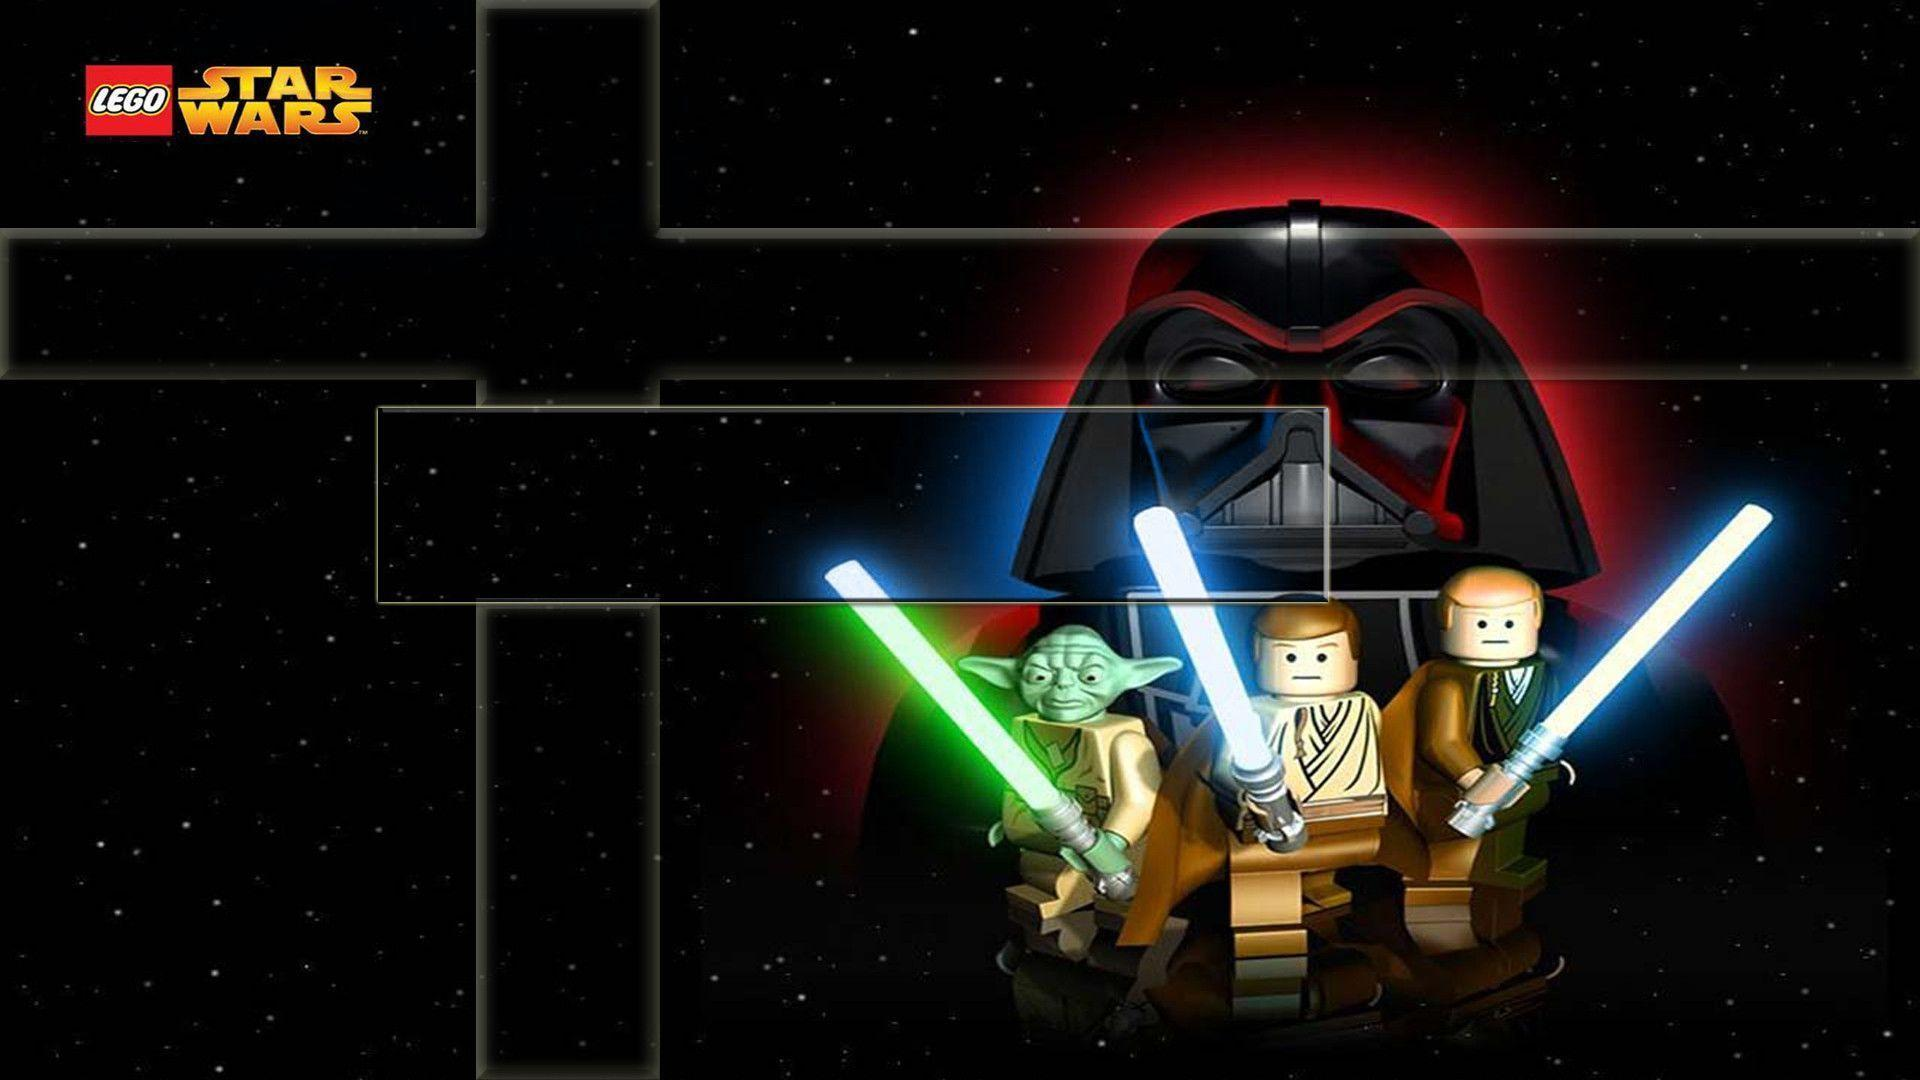 Lego Star Wars Wallpapers - Coloring Pages | Wallpapers | Photos ...